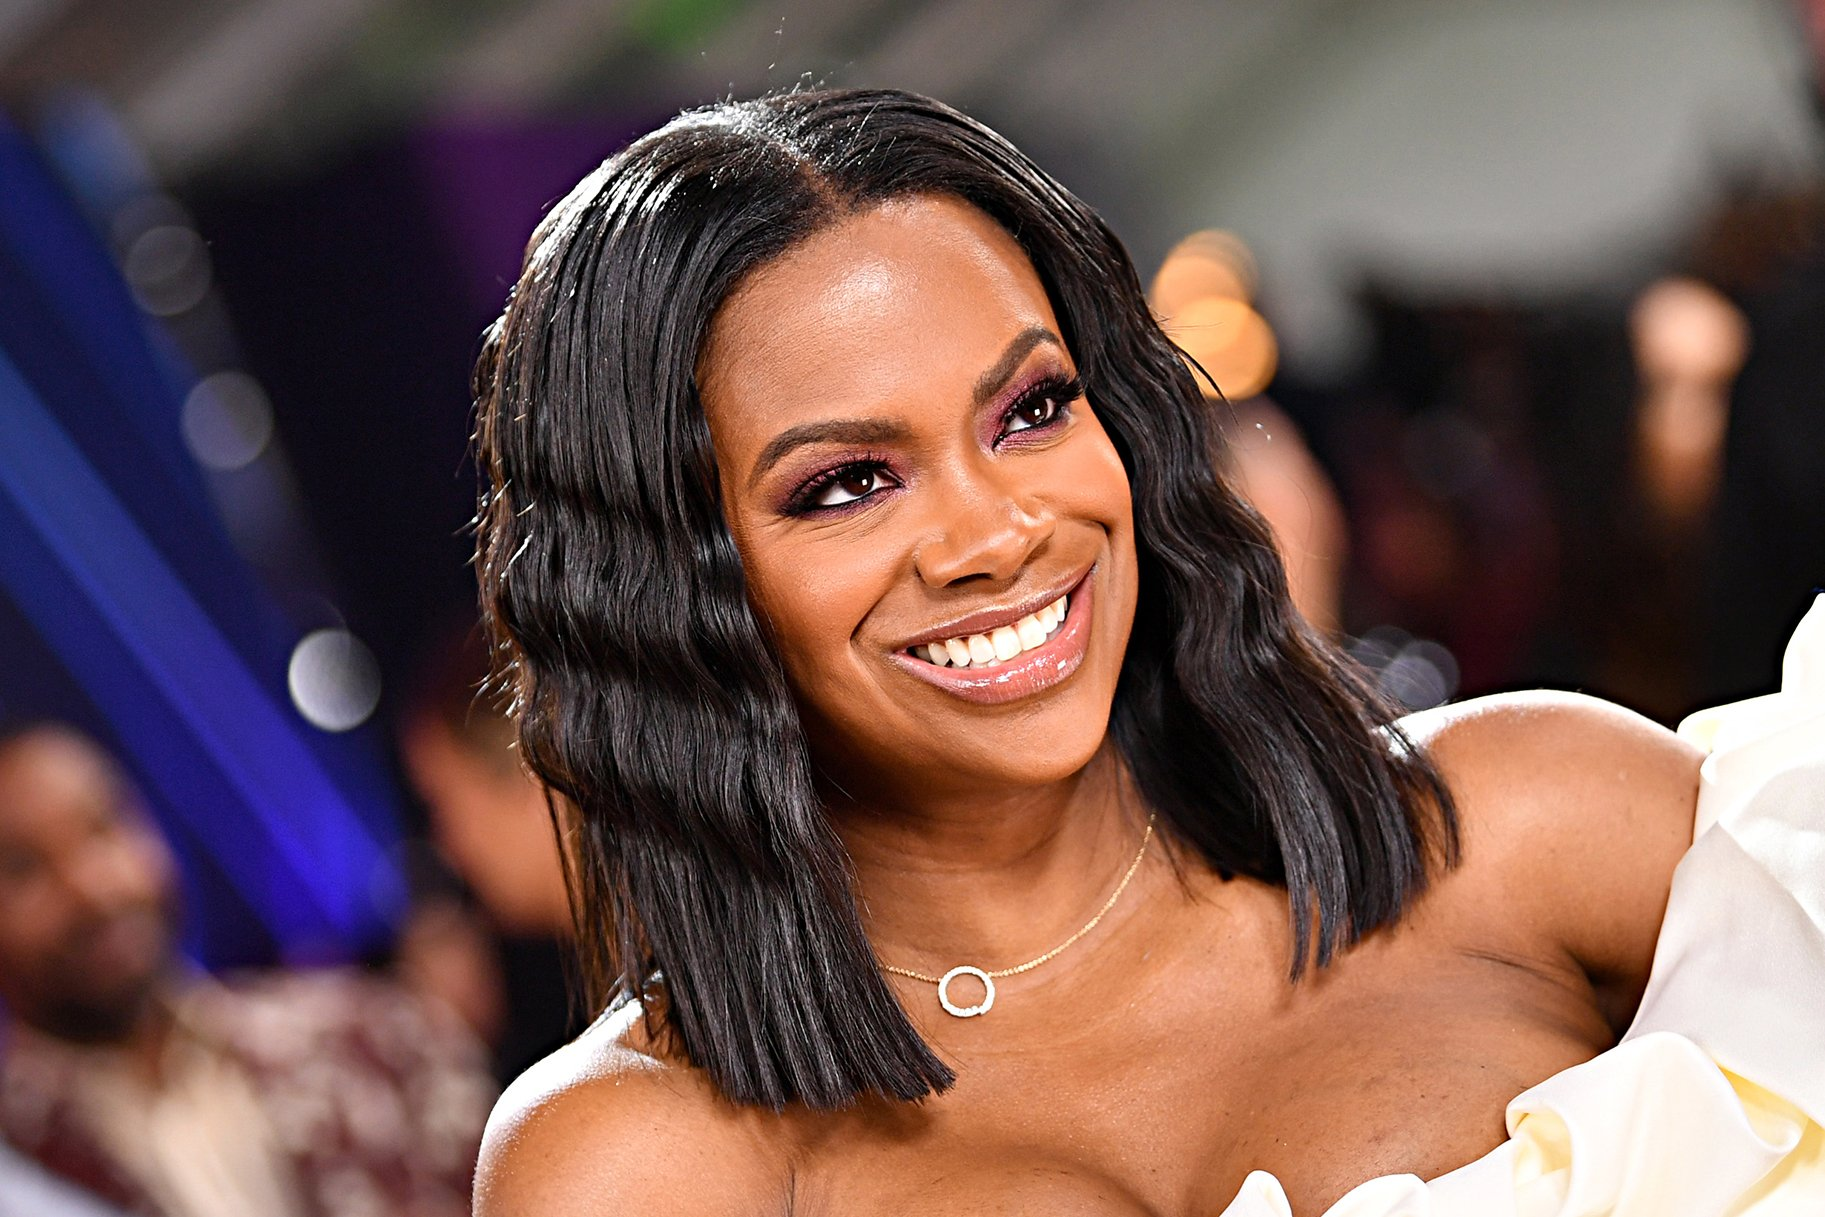 Kandi Burruss Films A Video With Don Juan – Check Out The Subjects They Addressed